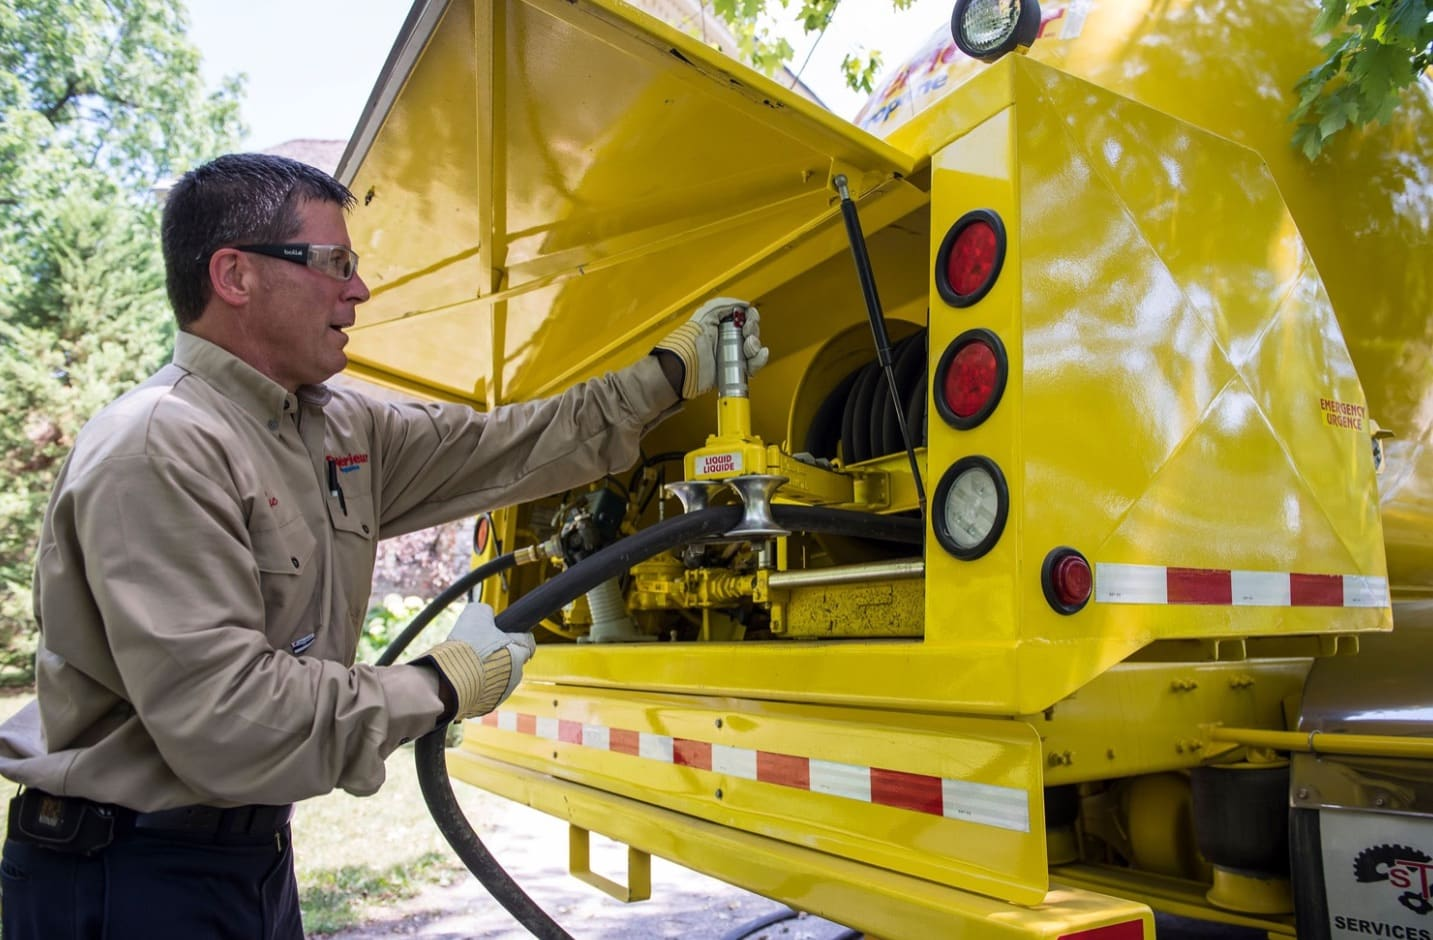 A Superior Propane employee preparing the hose from the truck to start refilling a tank.